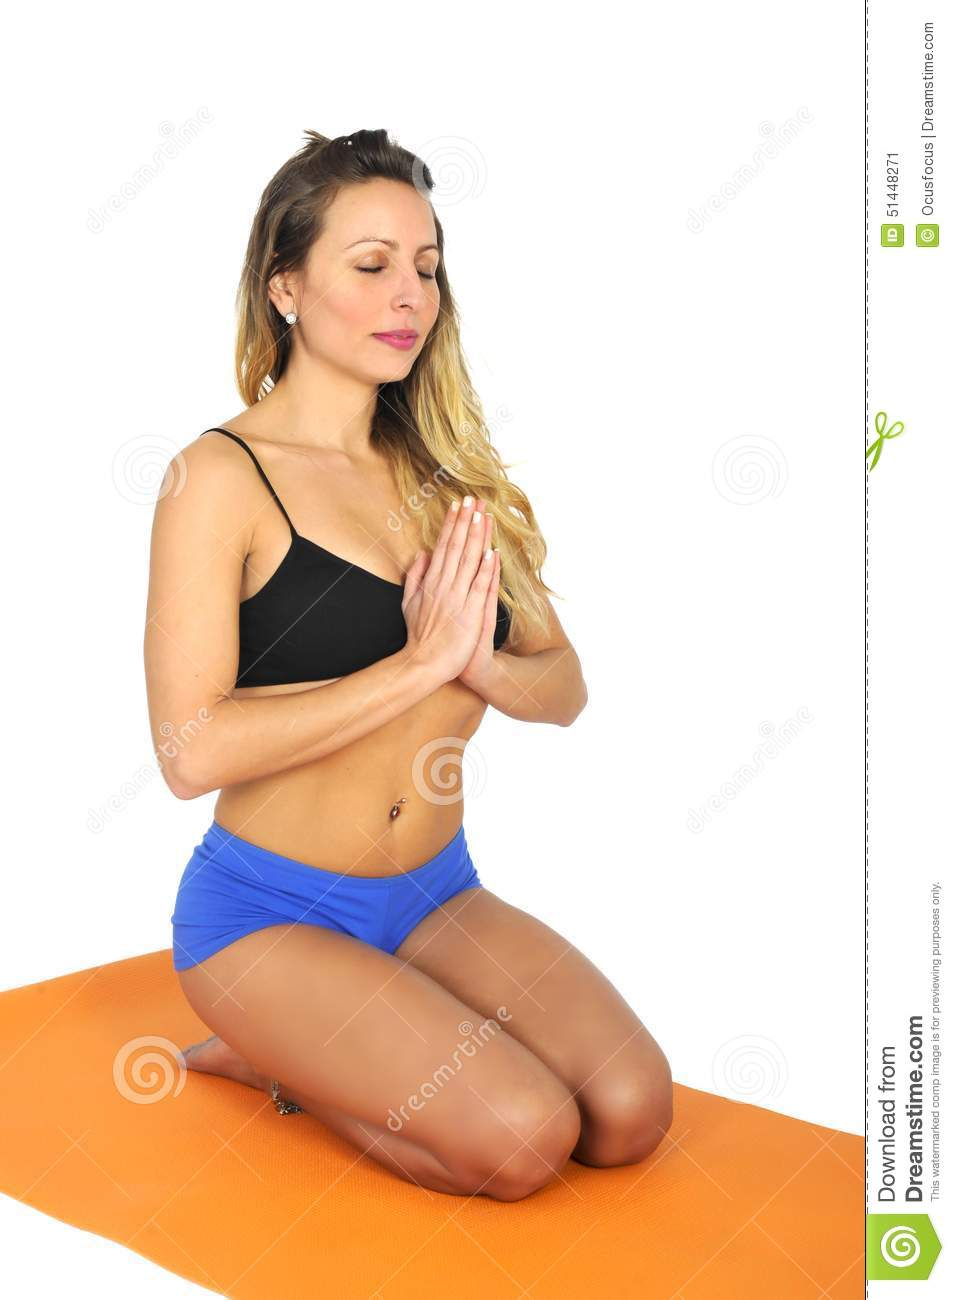 Hot Woman Doing Yoga : woman, doing, Young, Attractive, Woman, Doing, Exercise, Position, Sitting, Meditation, Relax, Stock, Image, Attractive,, Position:, 51448271